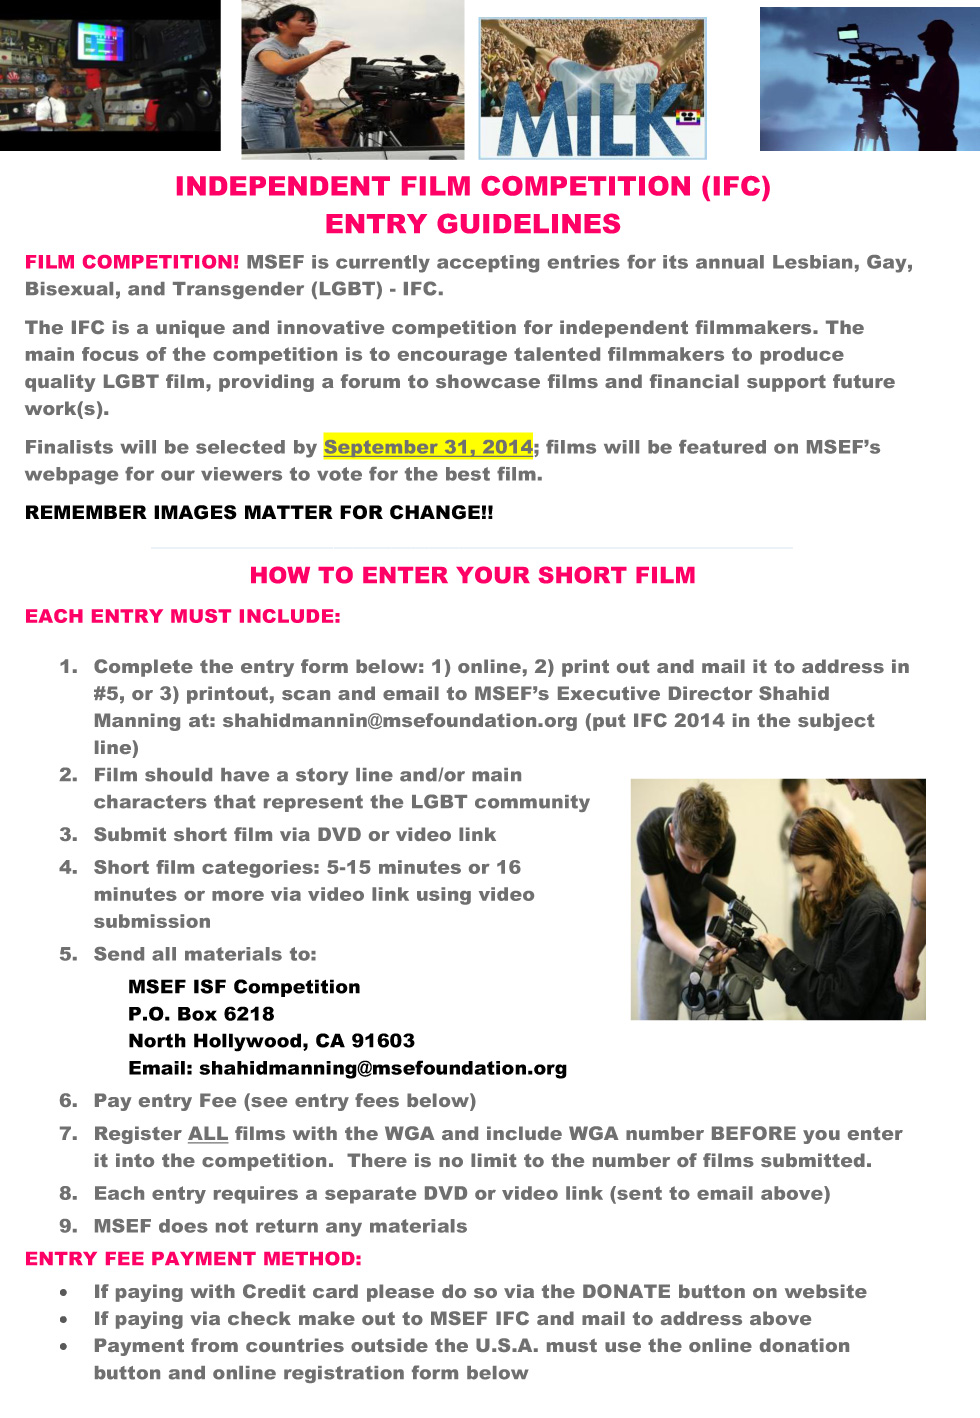 Indie-Film-Competition-guidelines-121313-1